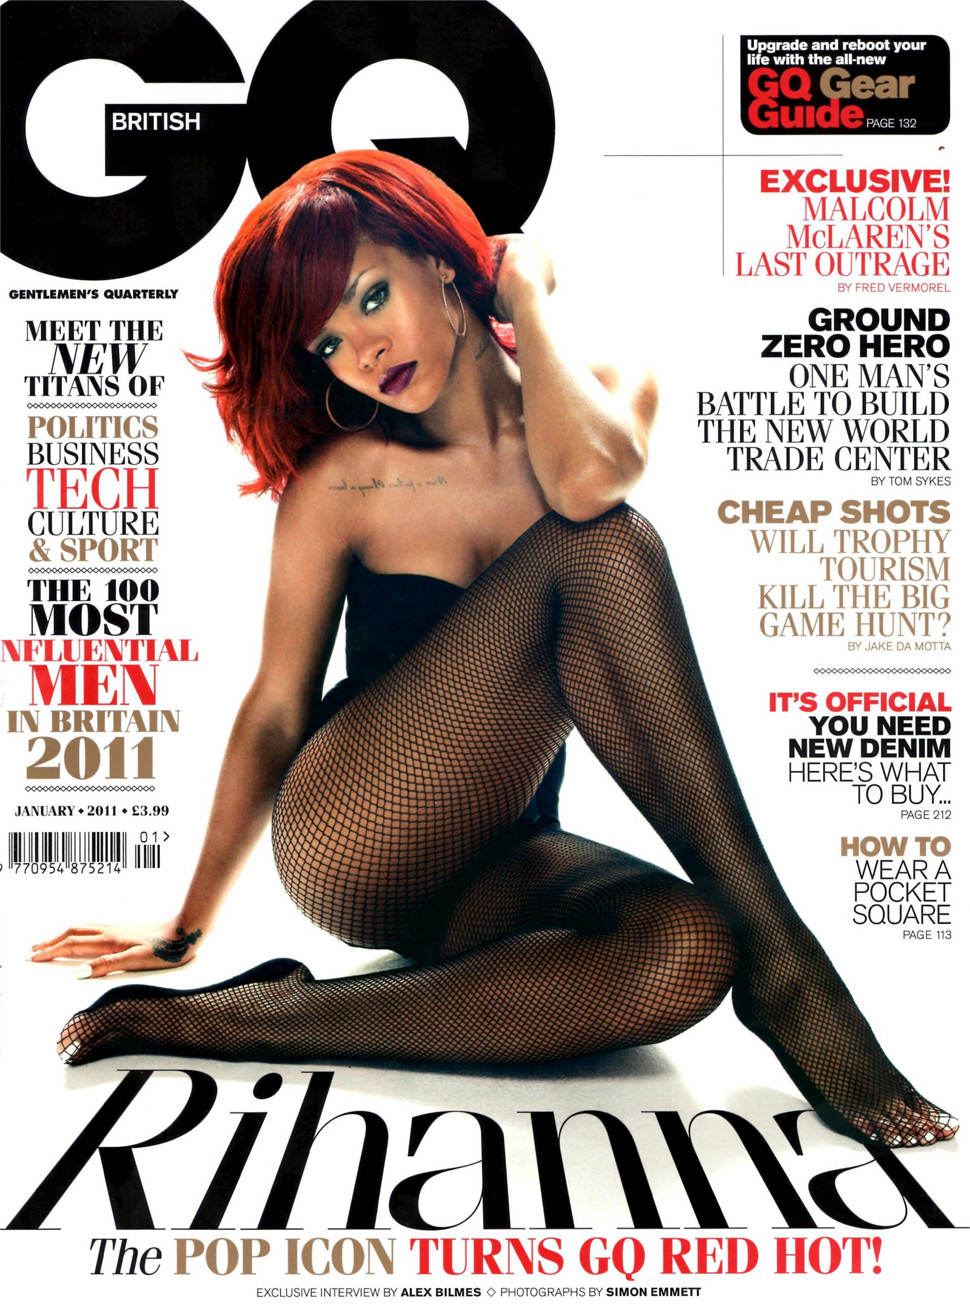 Gq Magazine The Secrets Of R Kelly: Upkeep The Ape: Rihanna